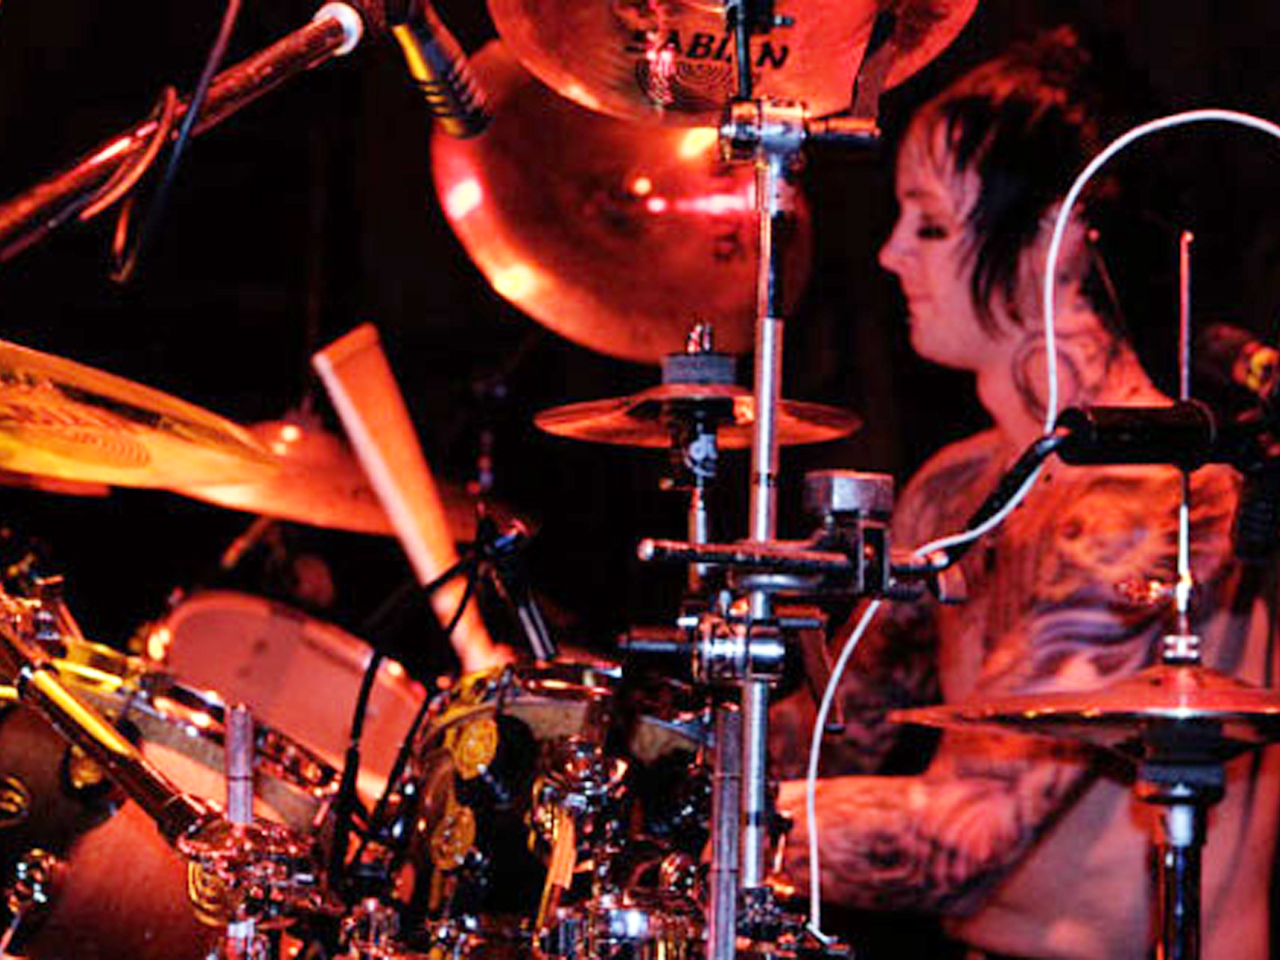 1280x960px The Rev Wallpaper 1280x960